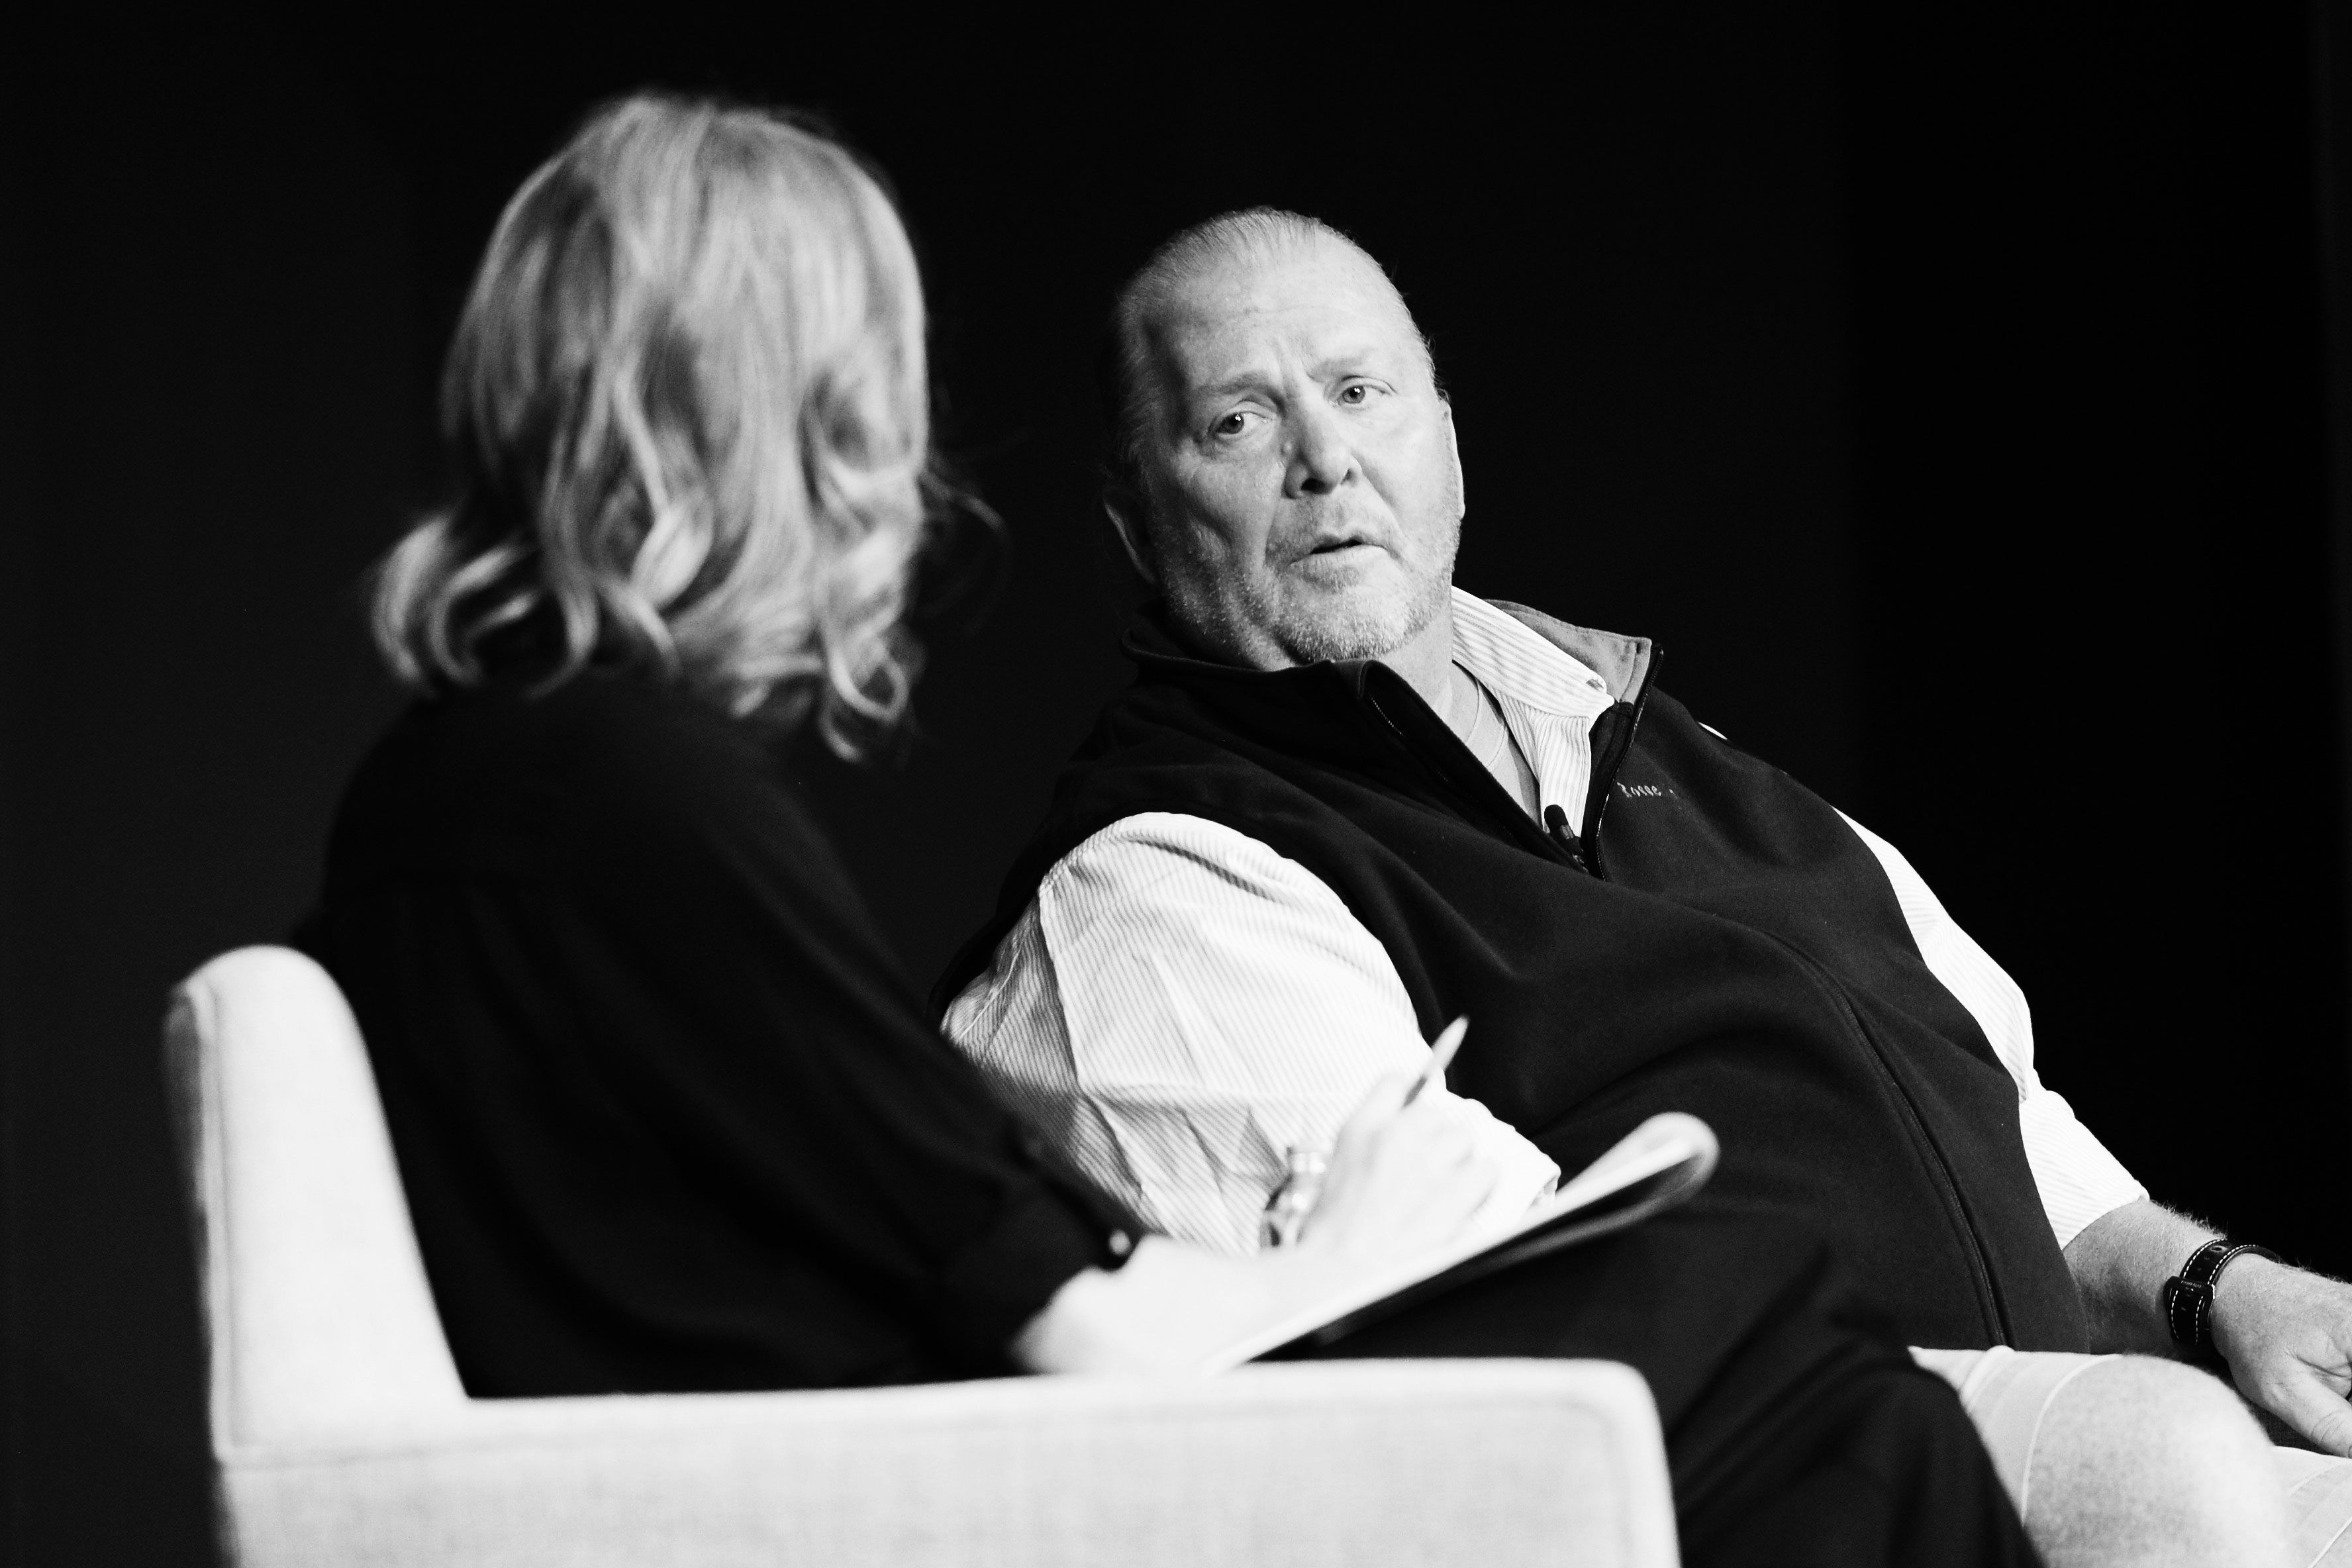 It Took 20 Months for Eataly to Remove Mario Batali